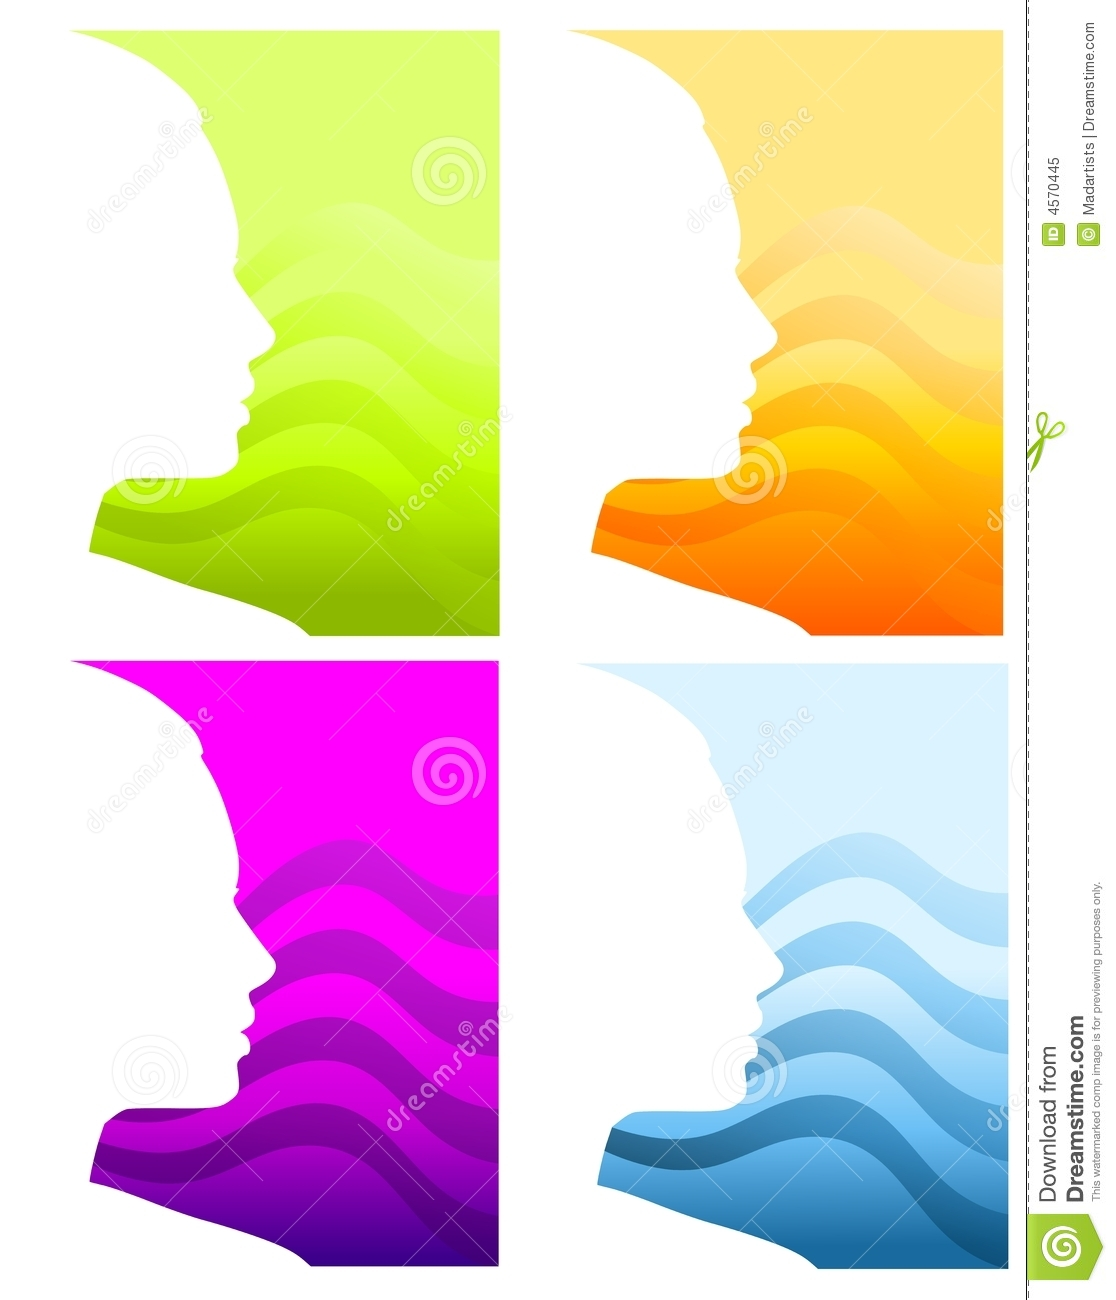 Head Face Silhouette Backgrounds Royalty Free Stock Photo